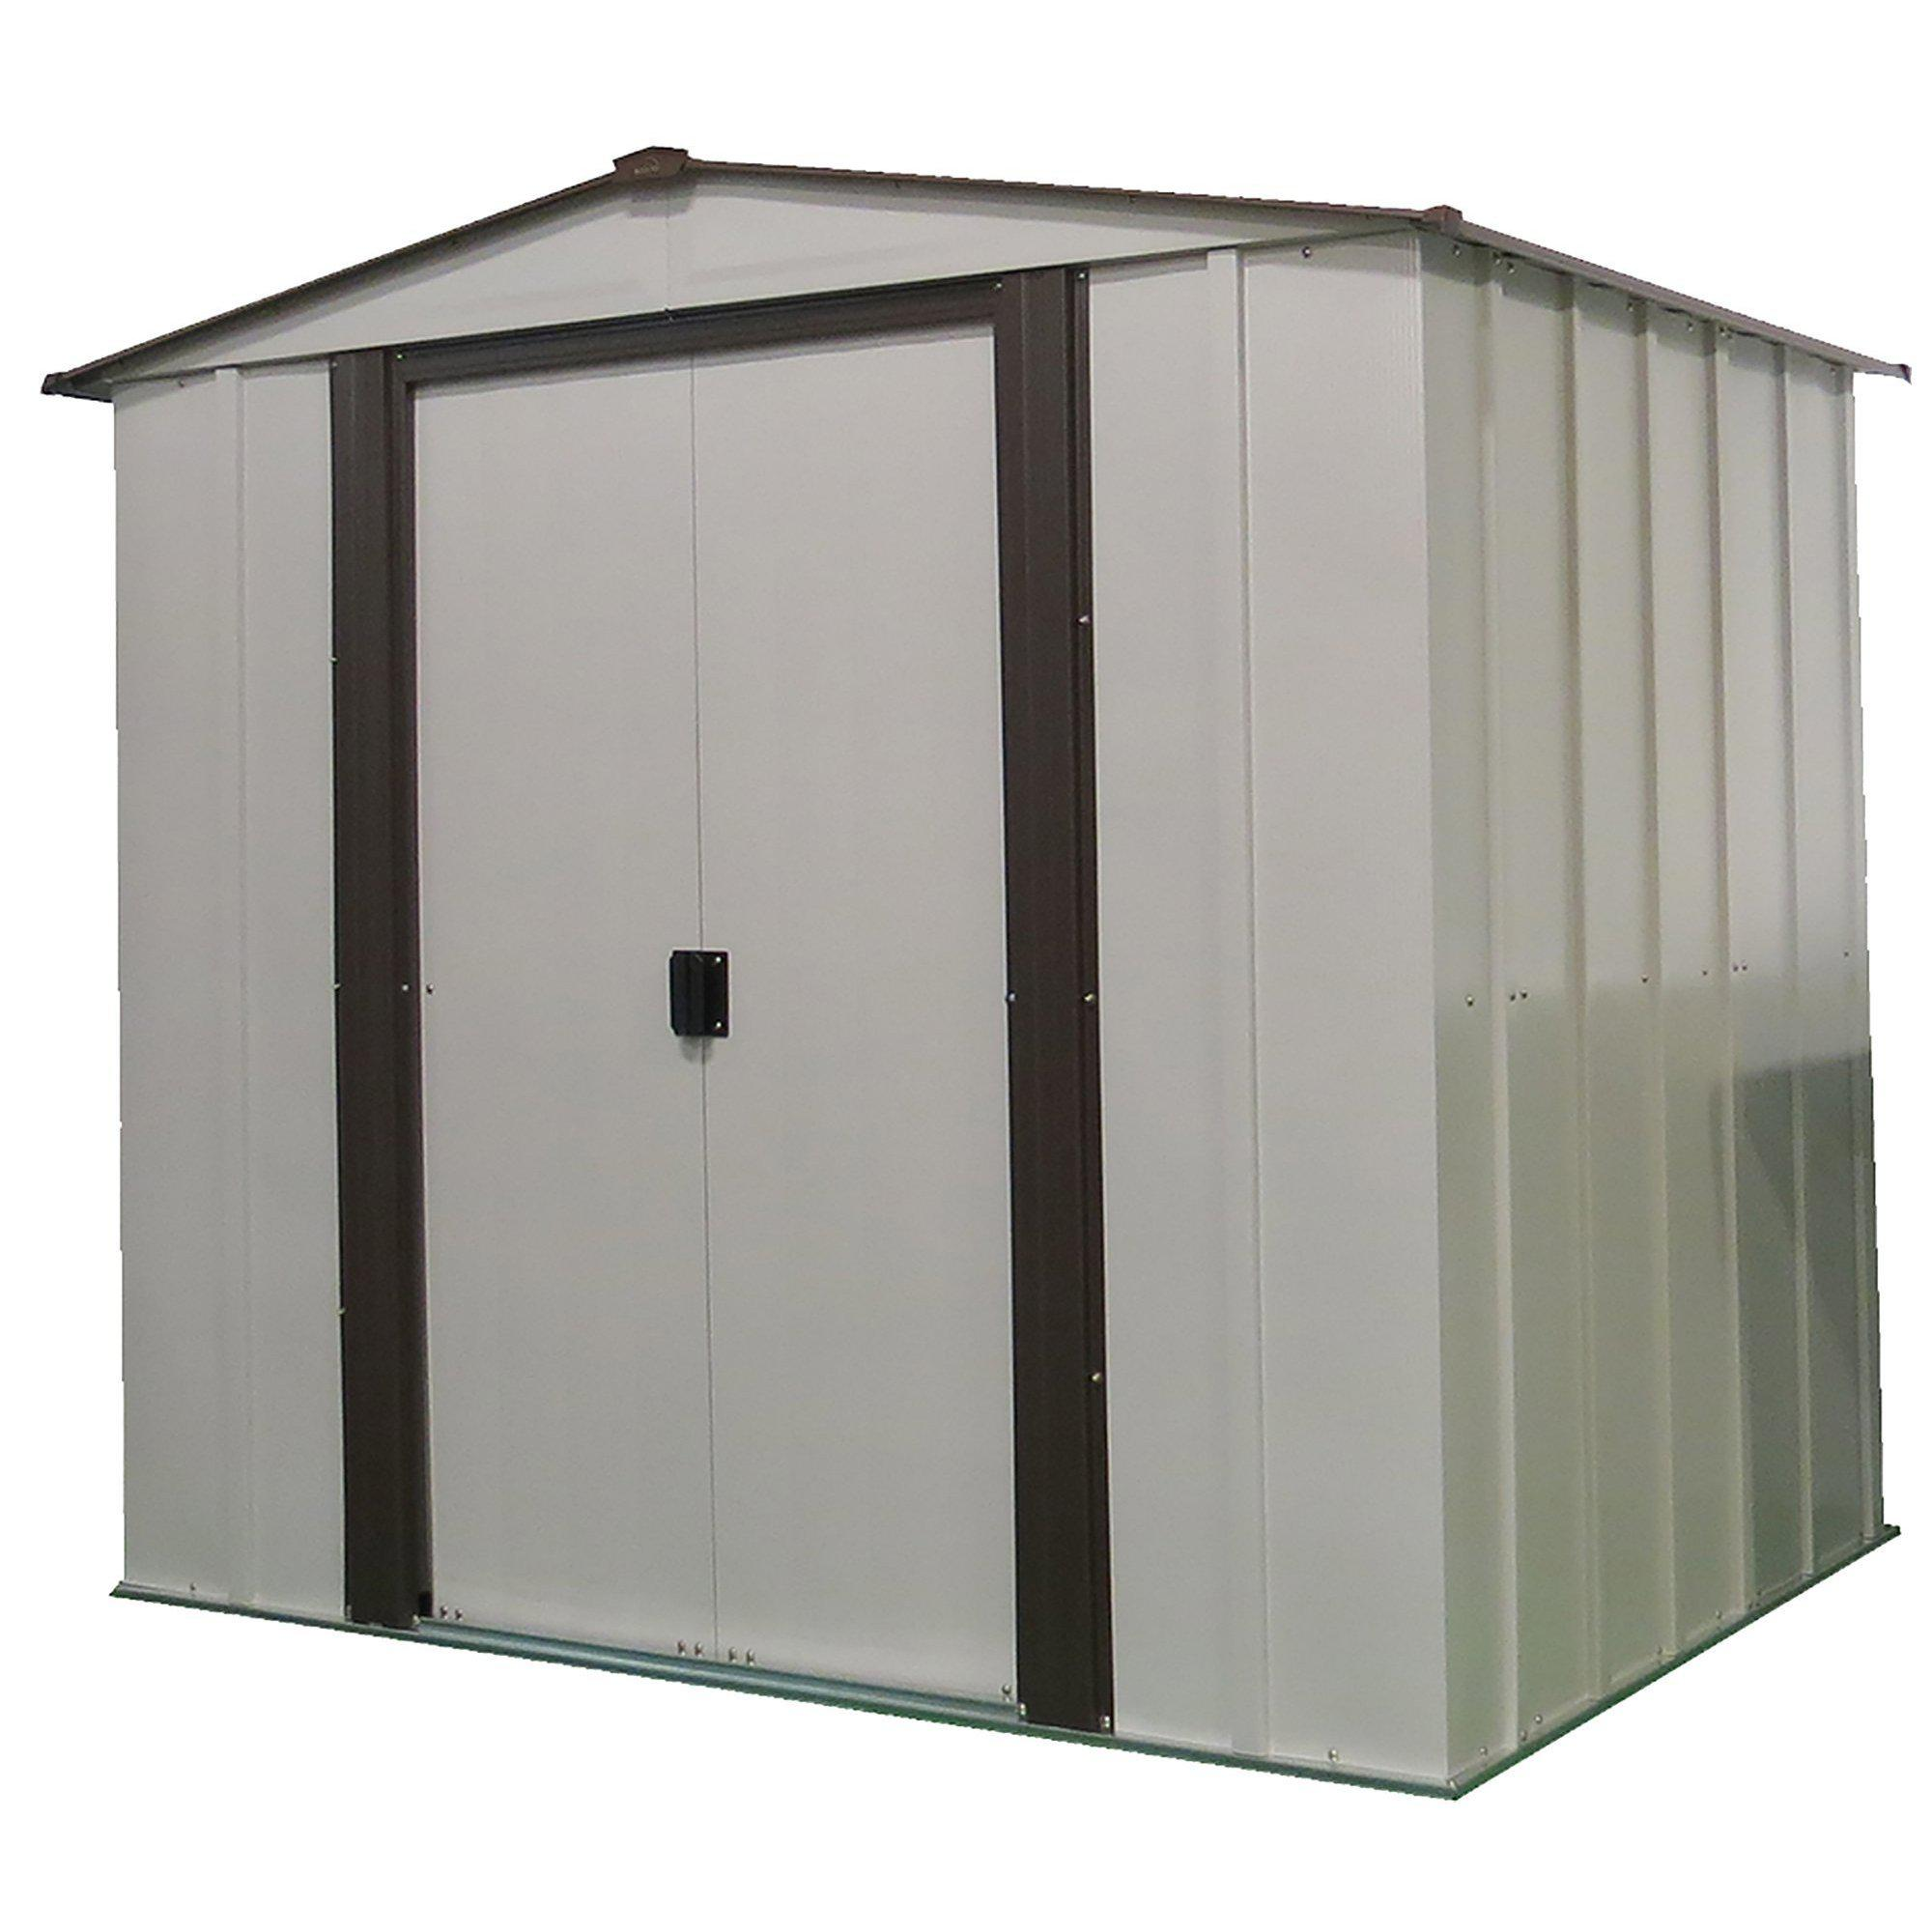 Arrow Newburgh Low Gable Steel Storage Shed, Coffee/Eggshell, 6 x 5 ft.